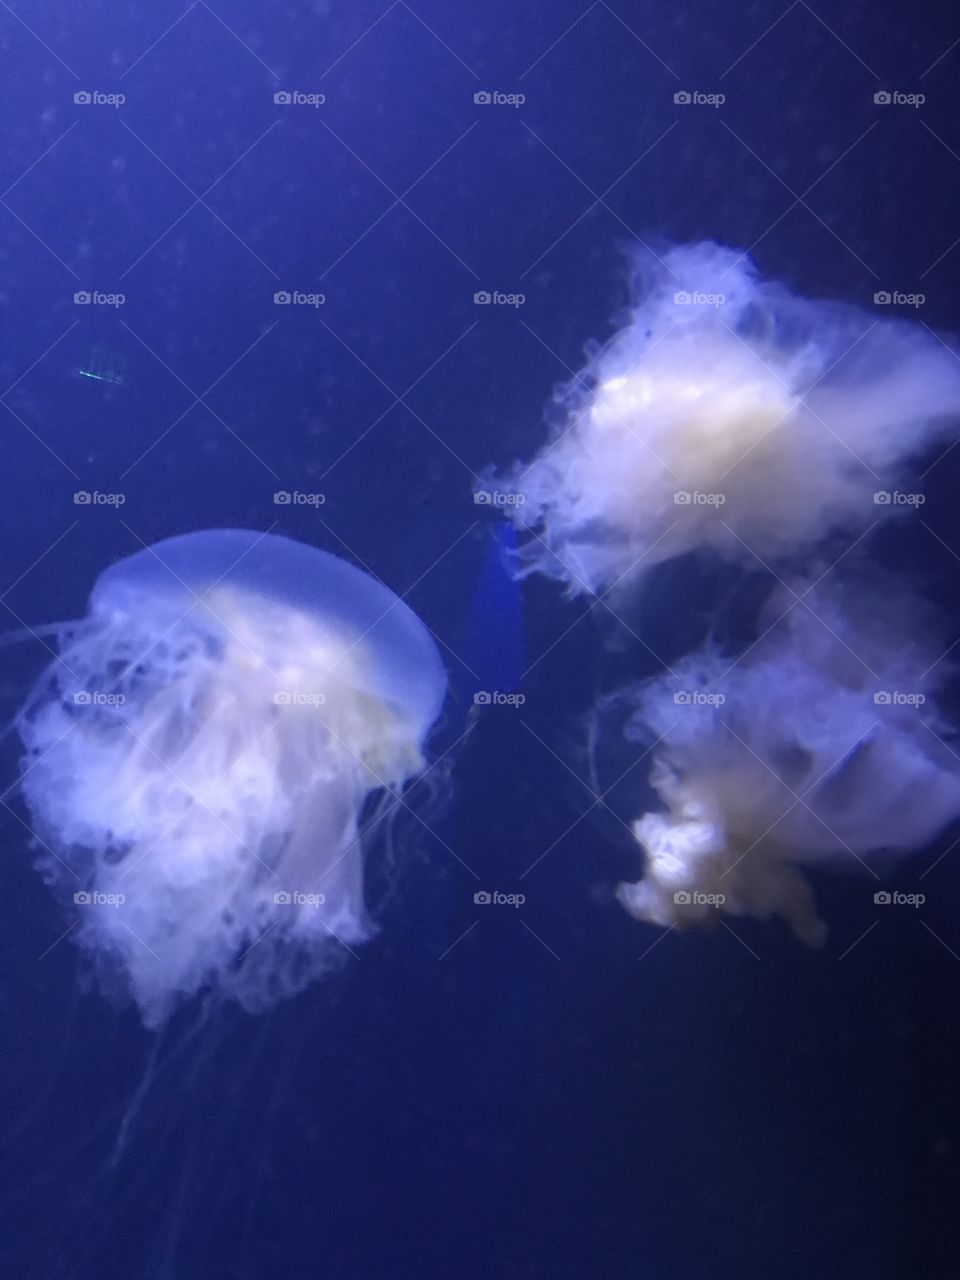 Egg yoke Jellyfish that resemble soft clouds or cotton. Simply beautiful!